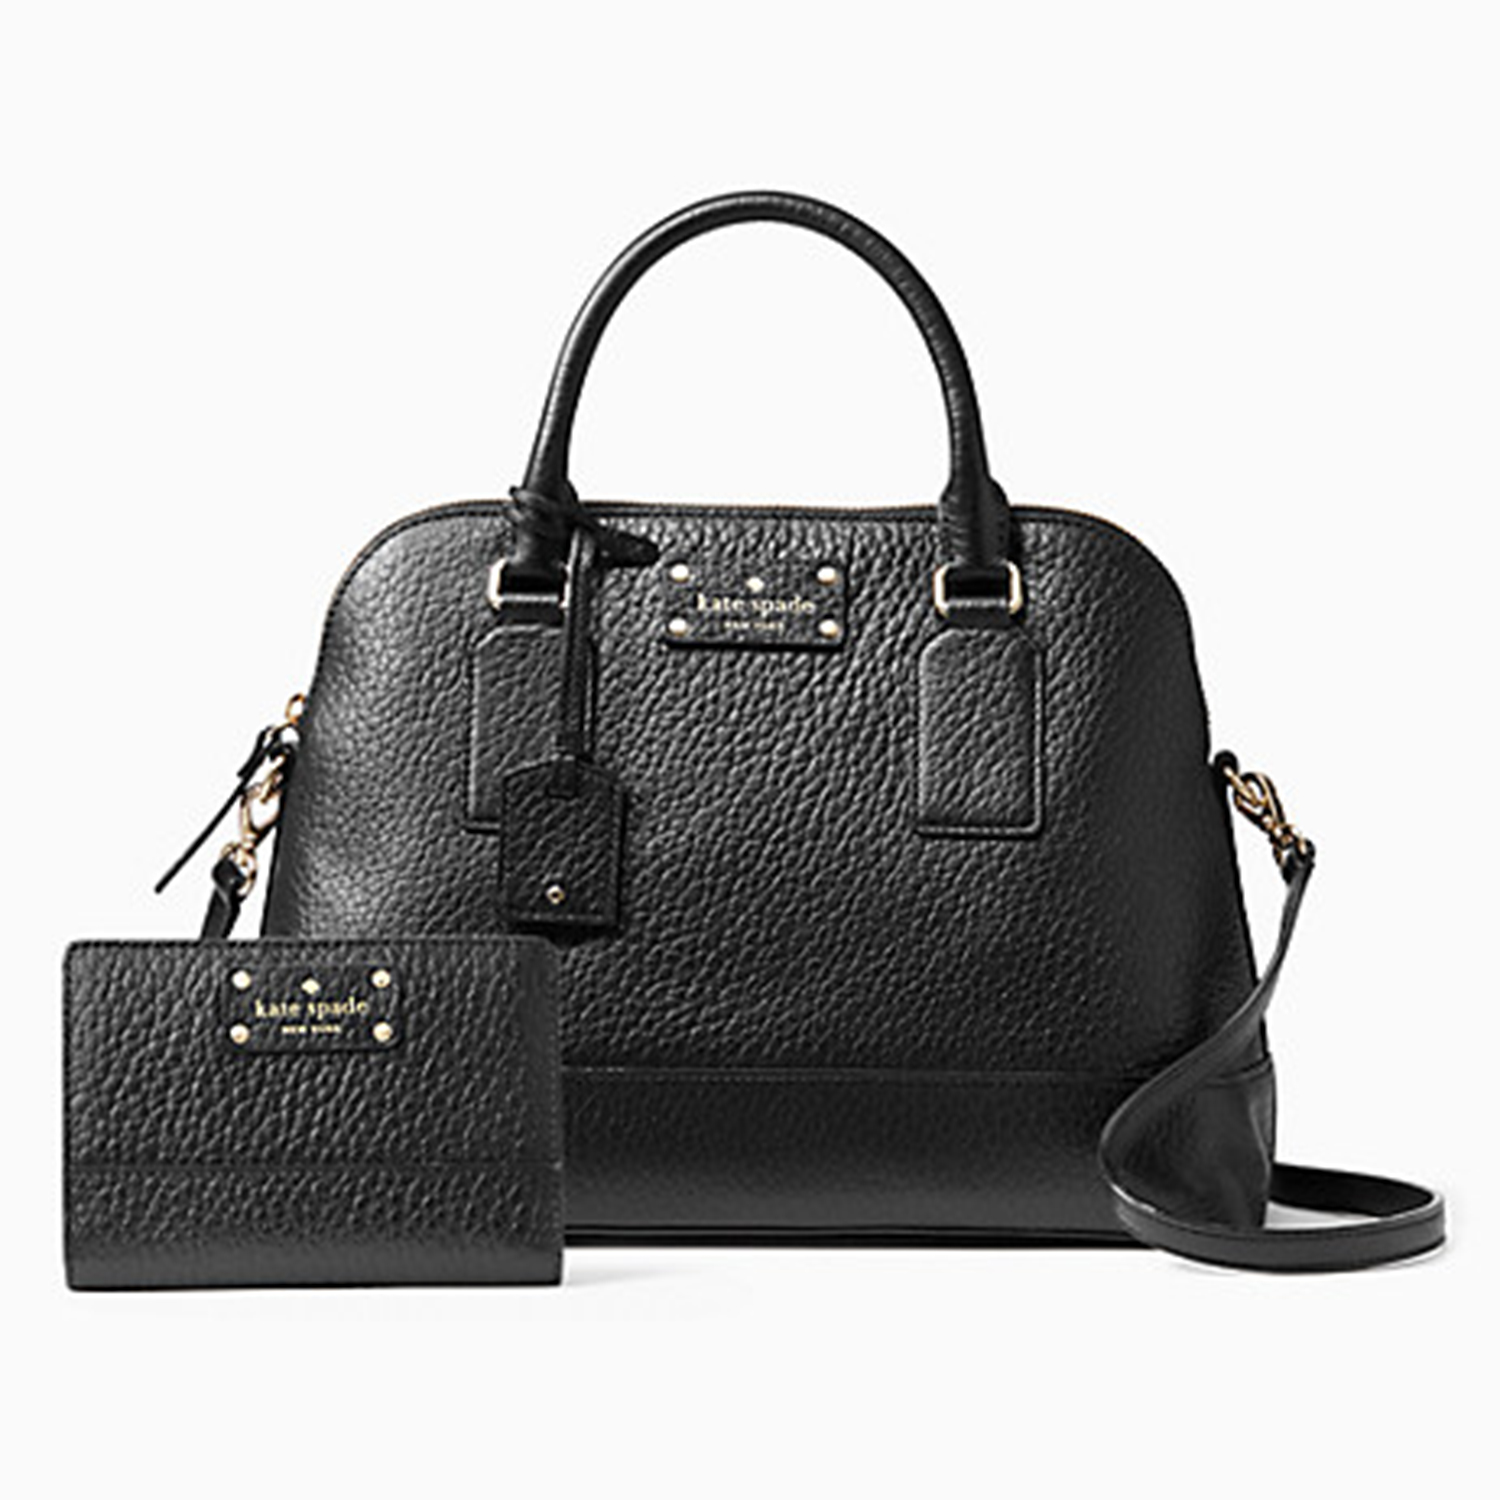 Kate Spade Bag and Accessories